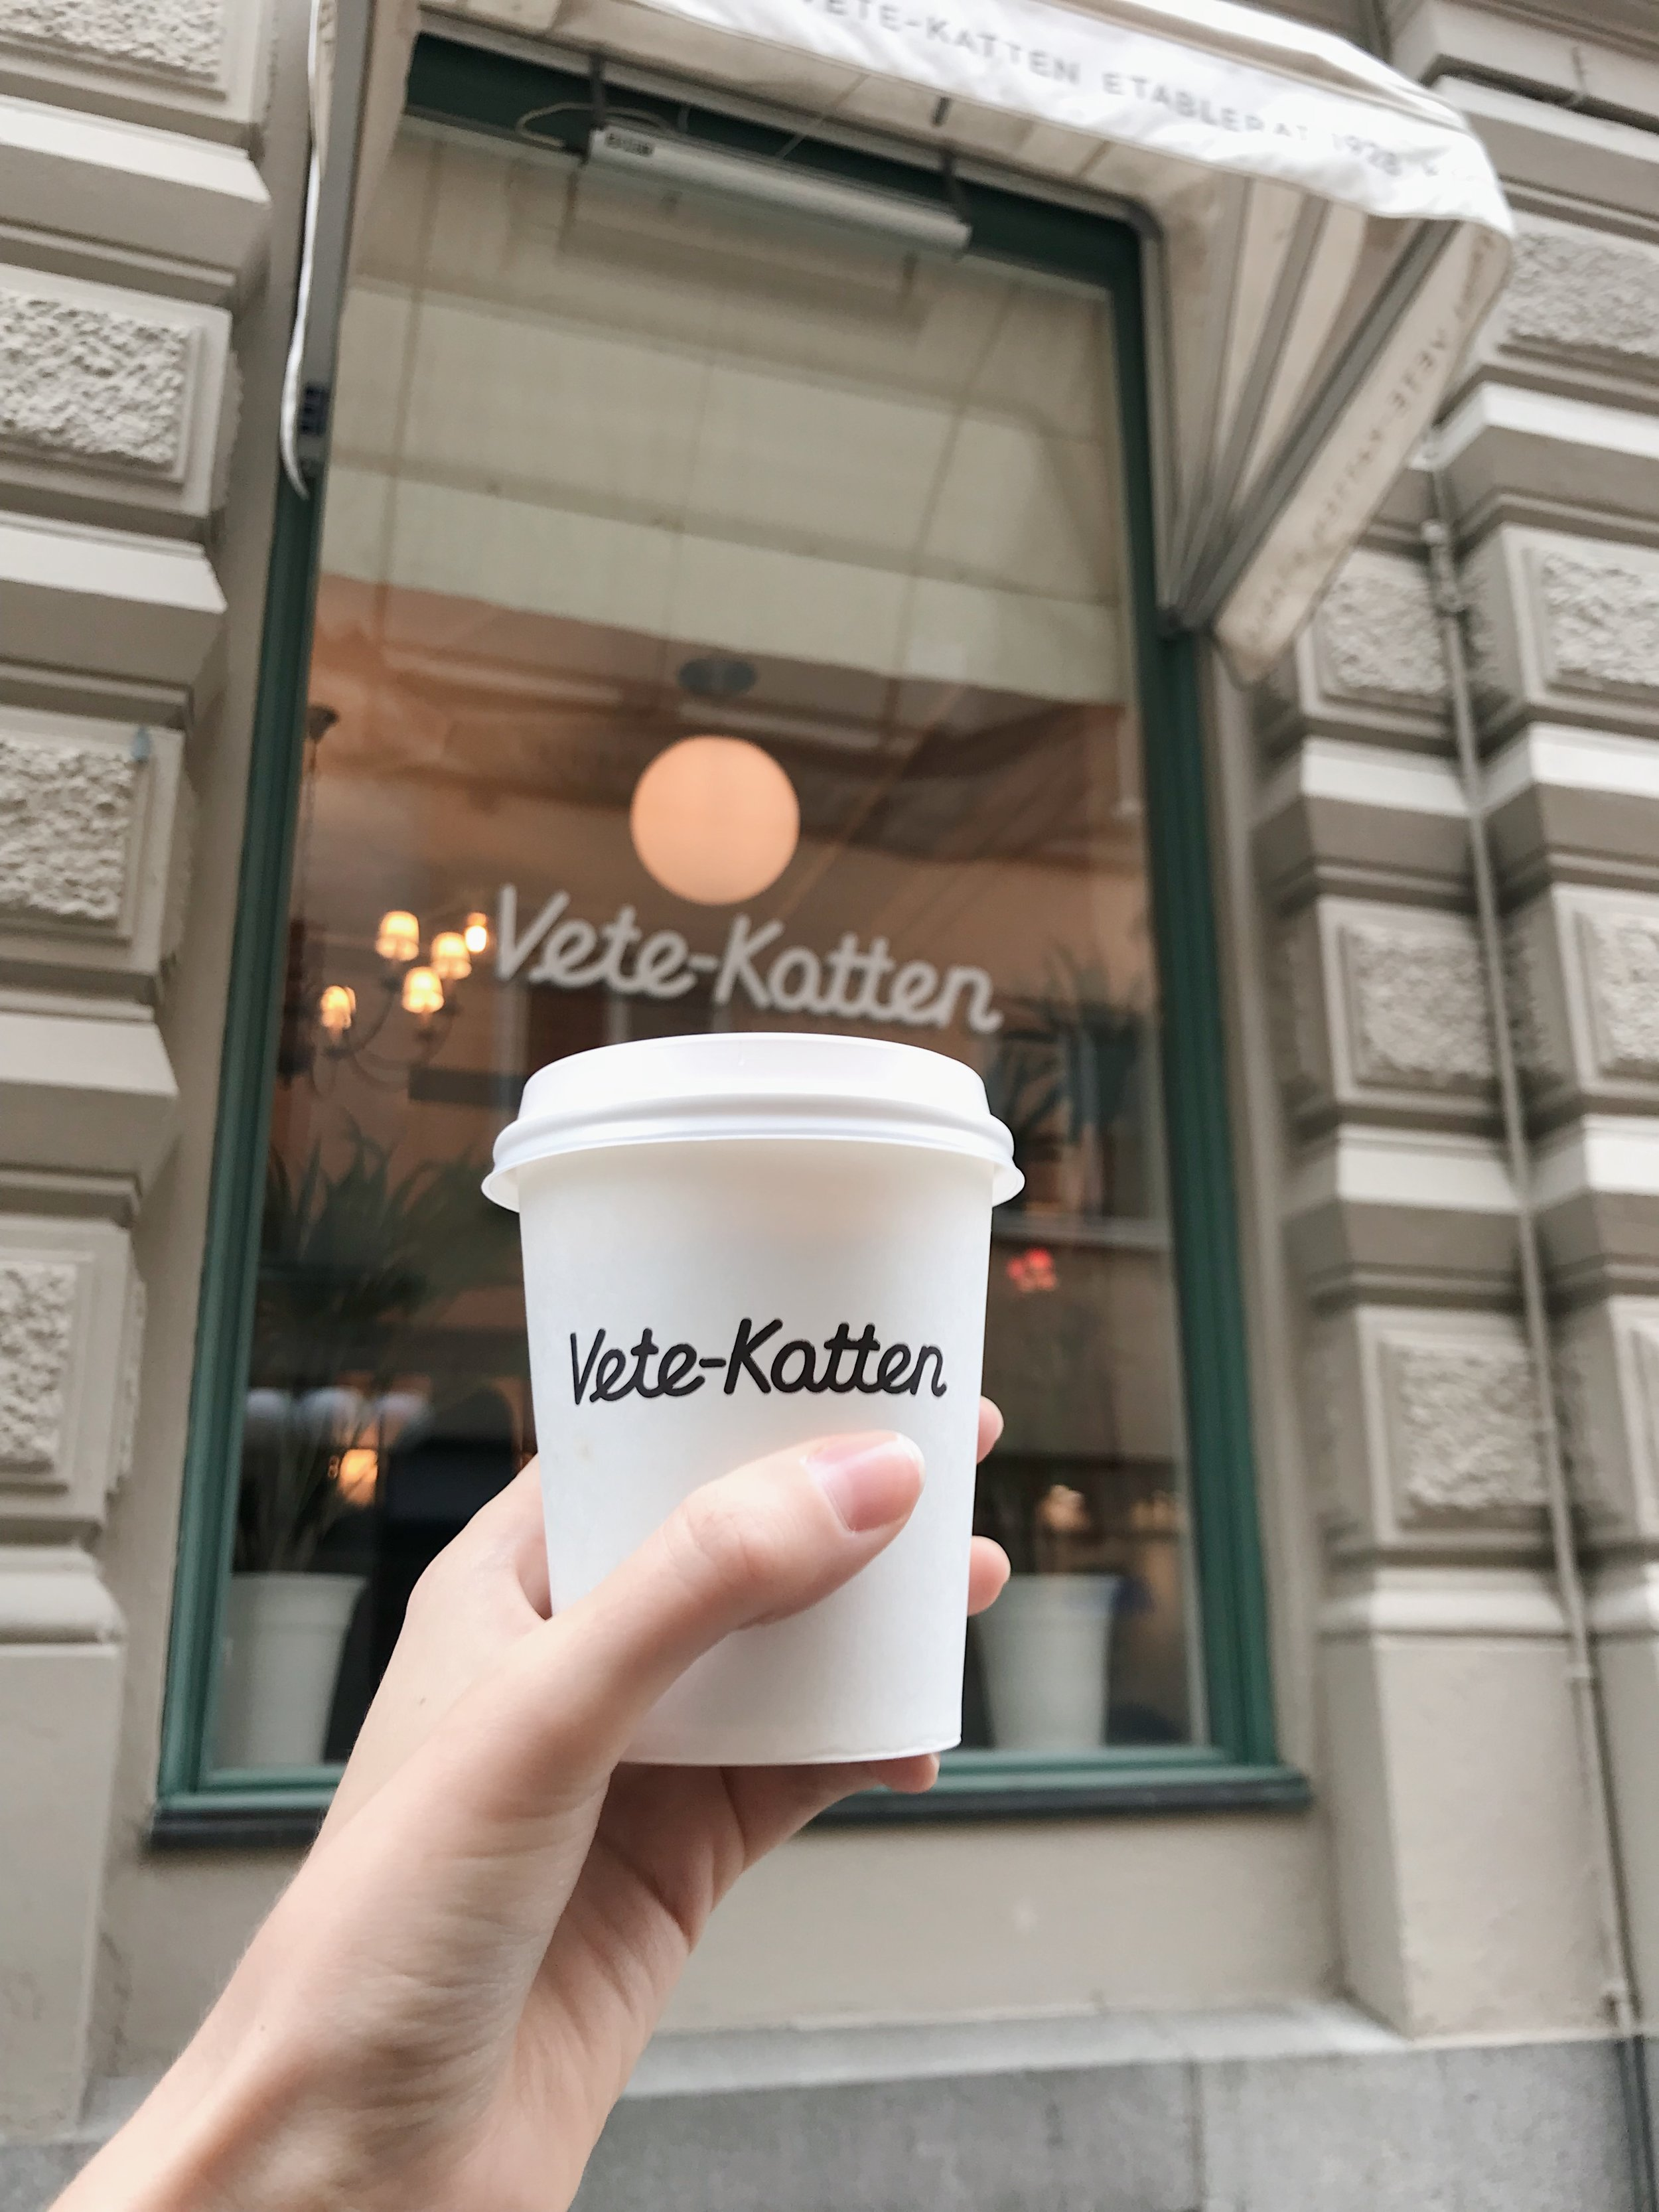 Vete-Katten - This is most certainly the equivalent of Cafe Kitsuné in Paris. Good coffee (in an oh-so-Instagrammable cup). Perfect for a grab and go beverage to keep you warm while wandering the streets.